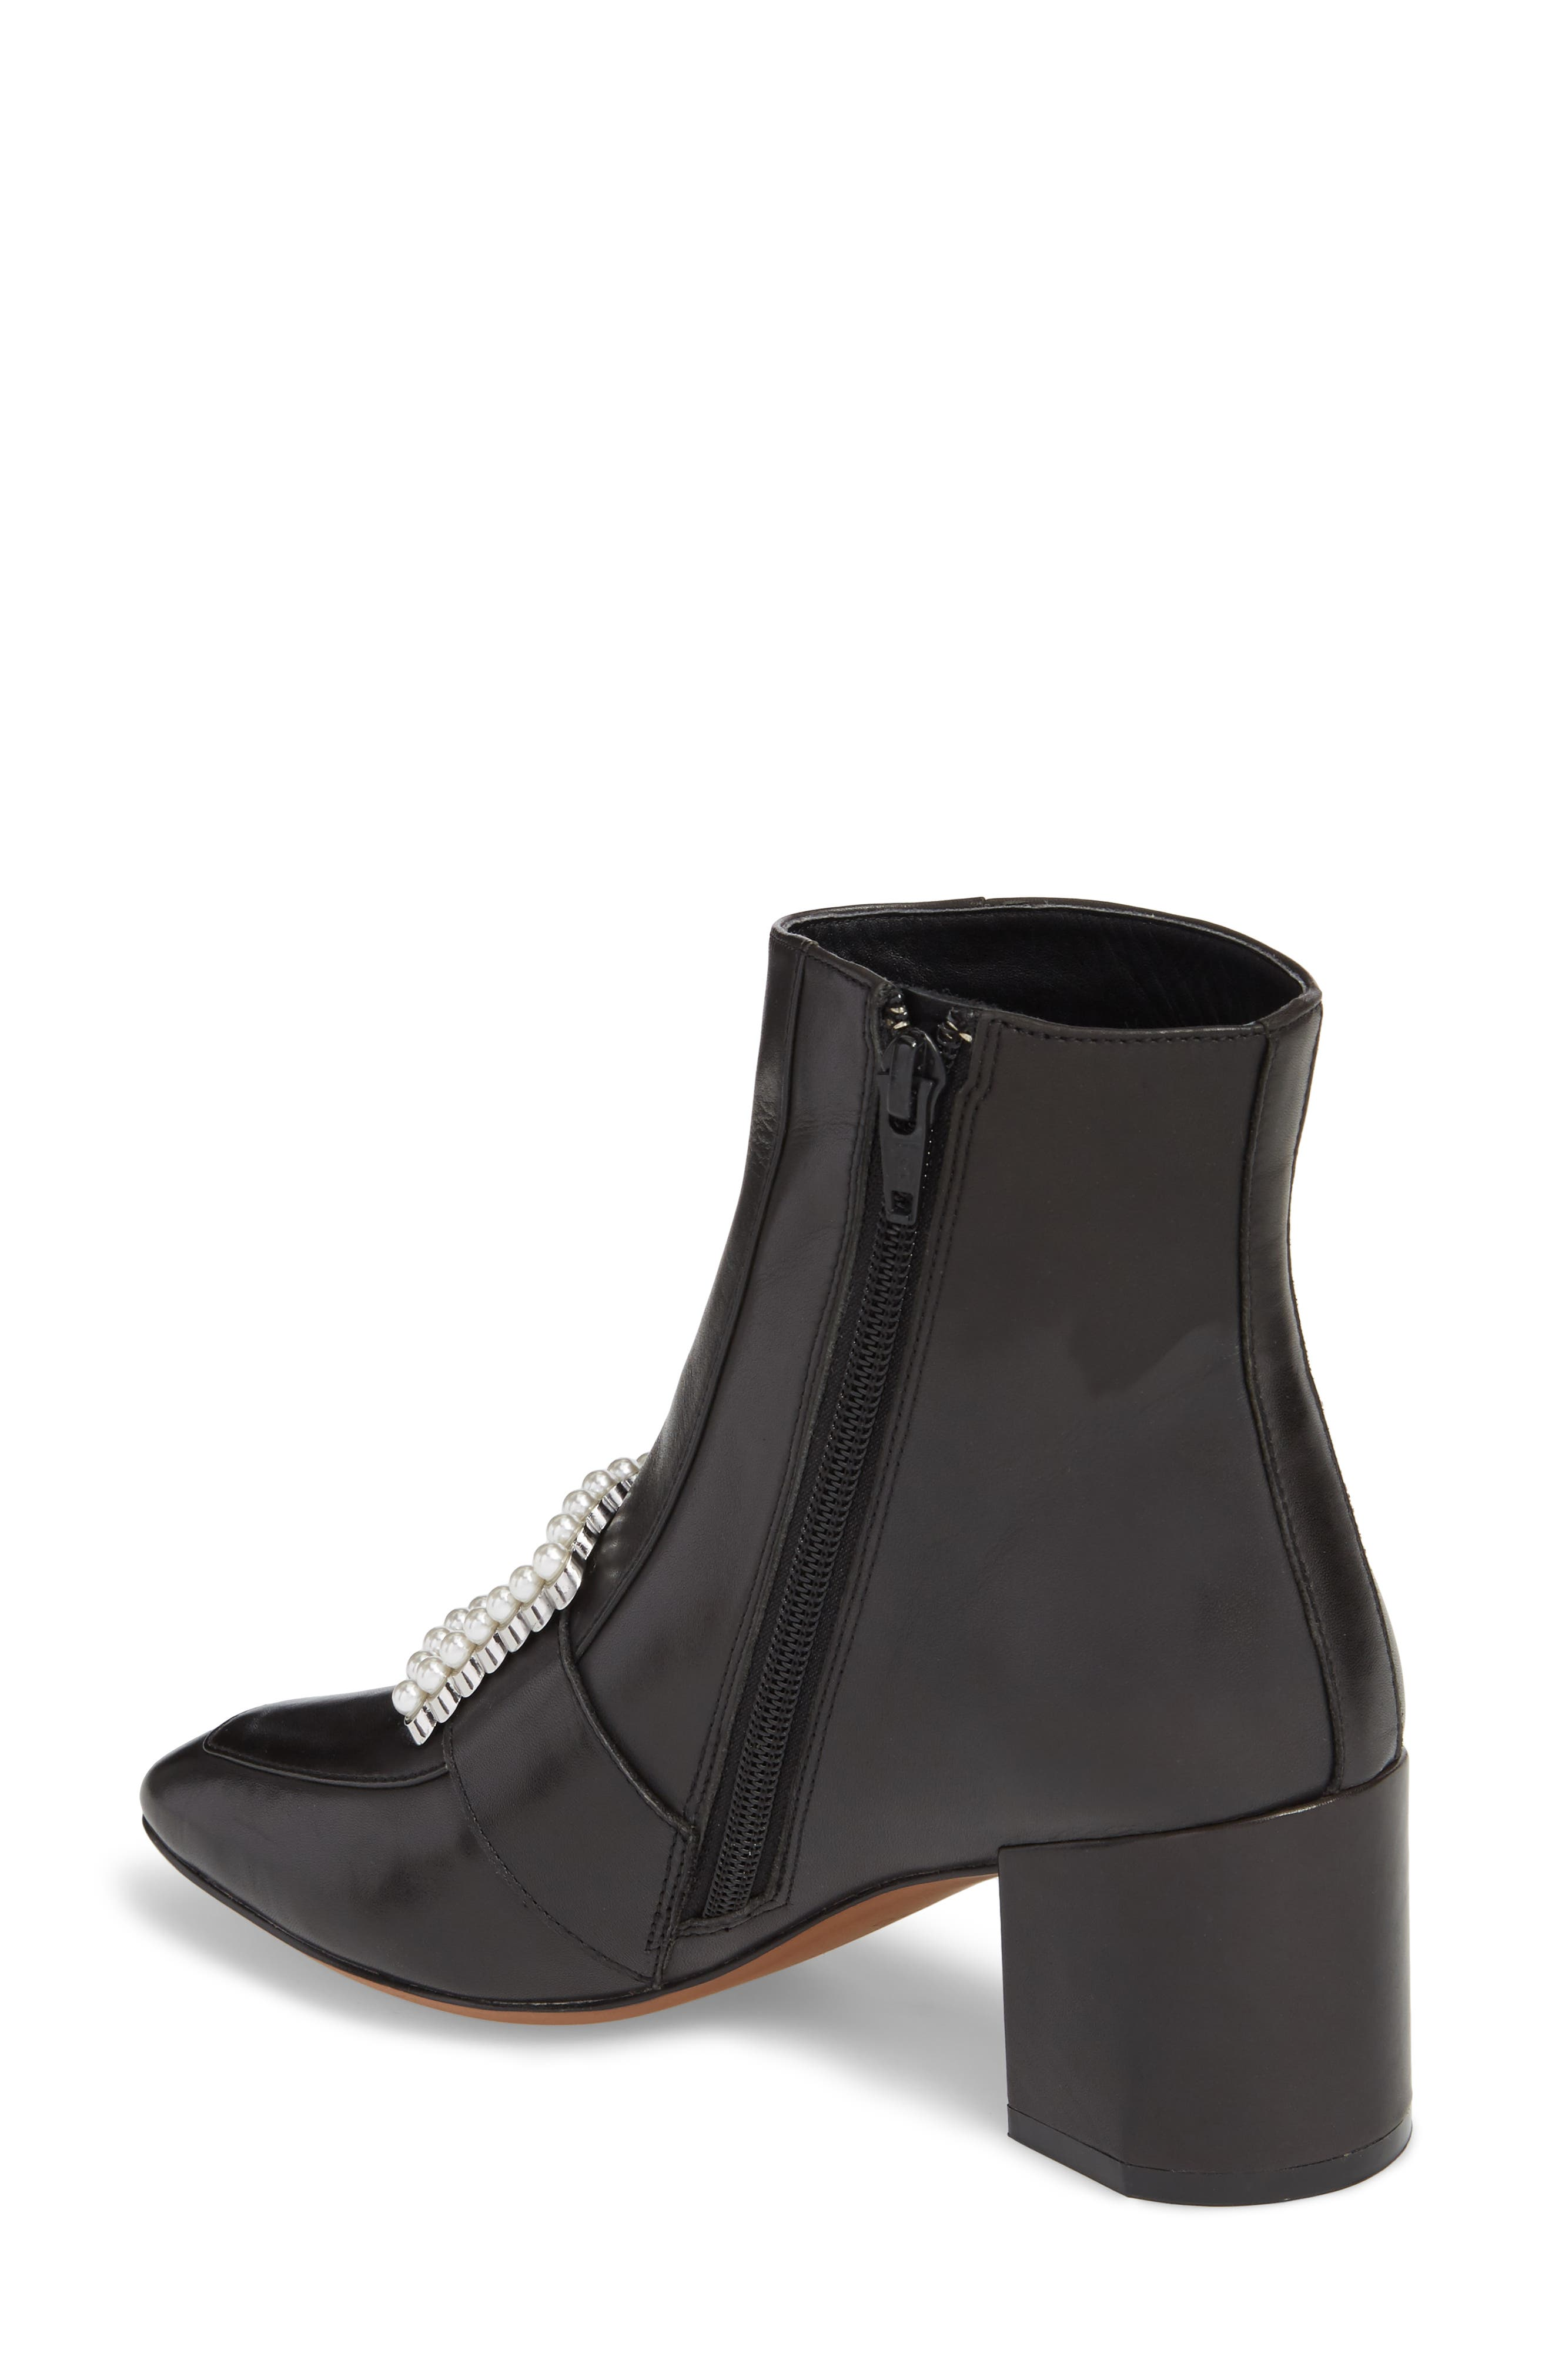 Cadence Buckle Bootie,                             Alternate thumbnail 2, color,                             009